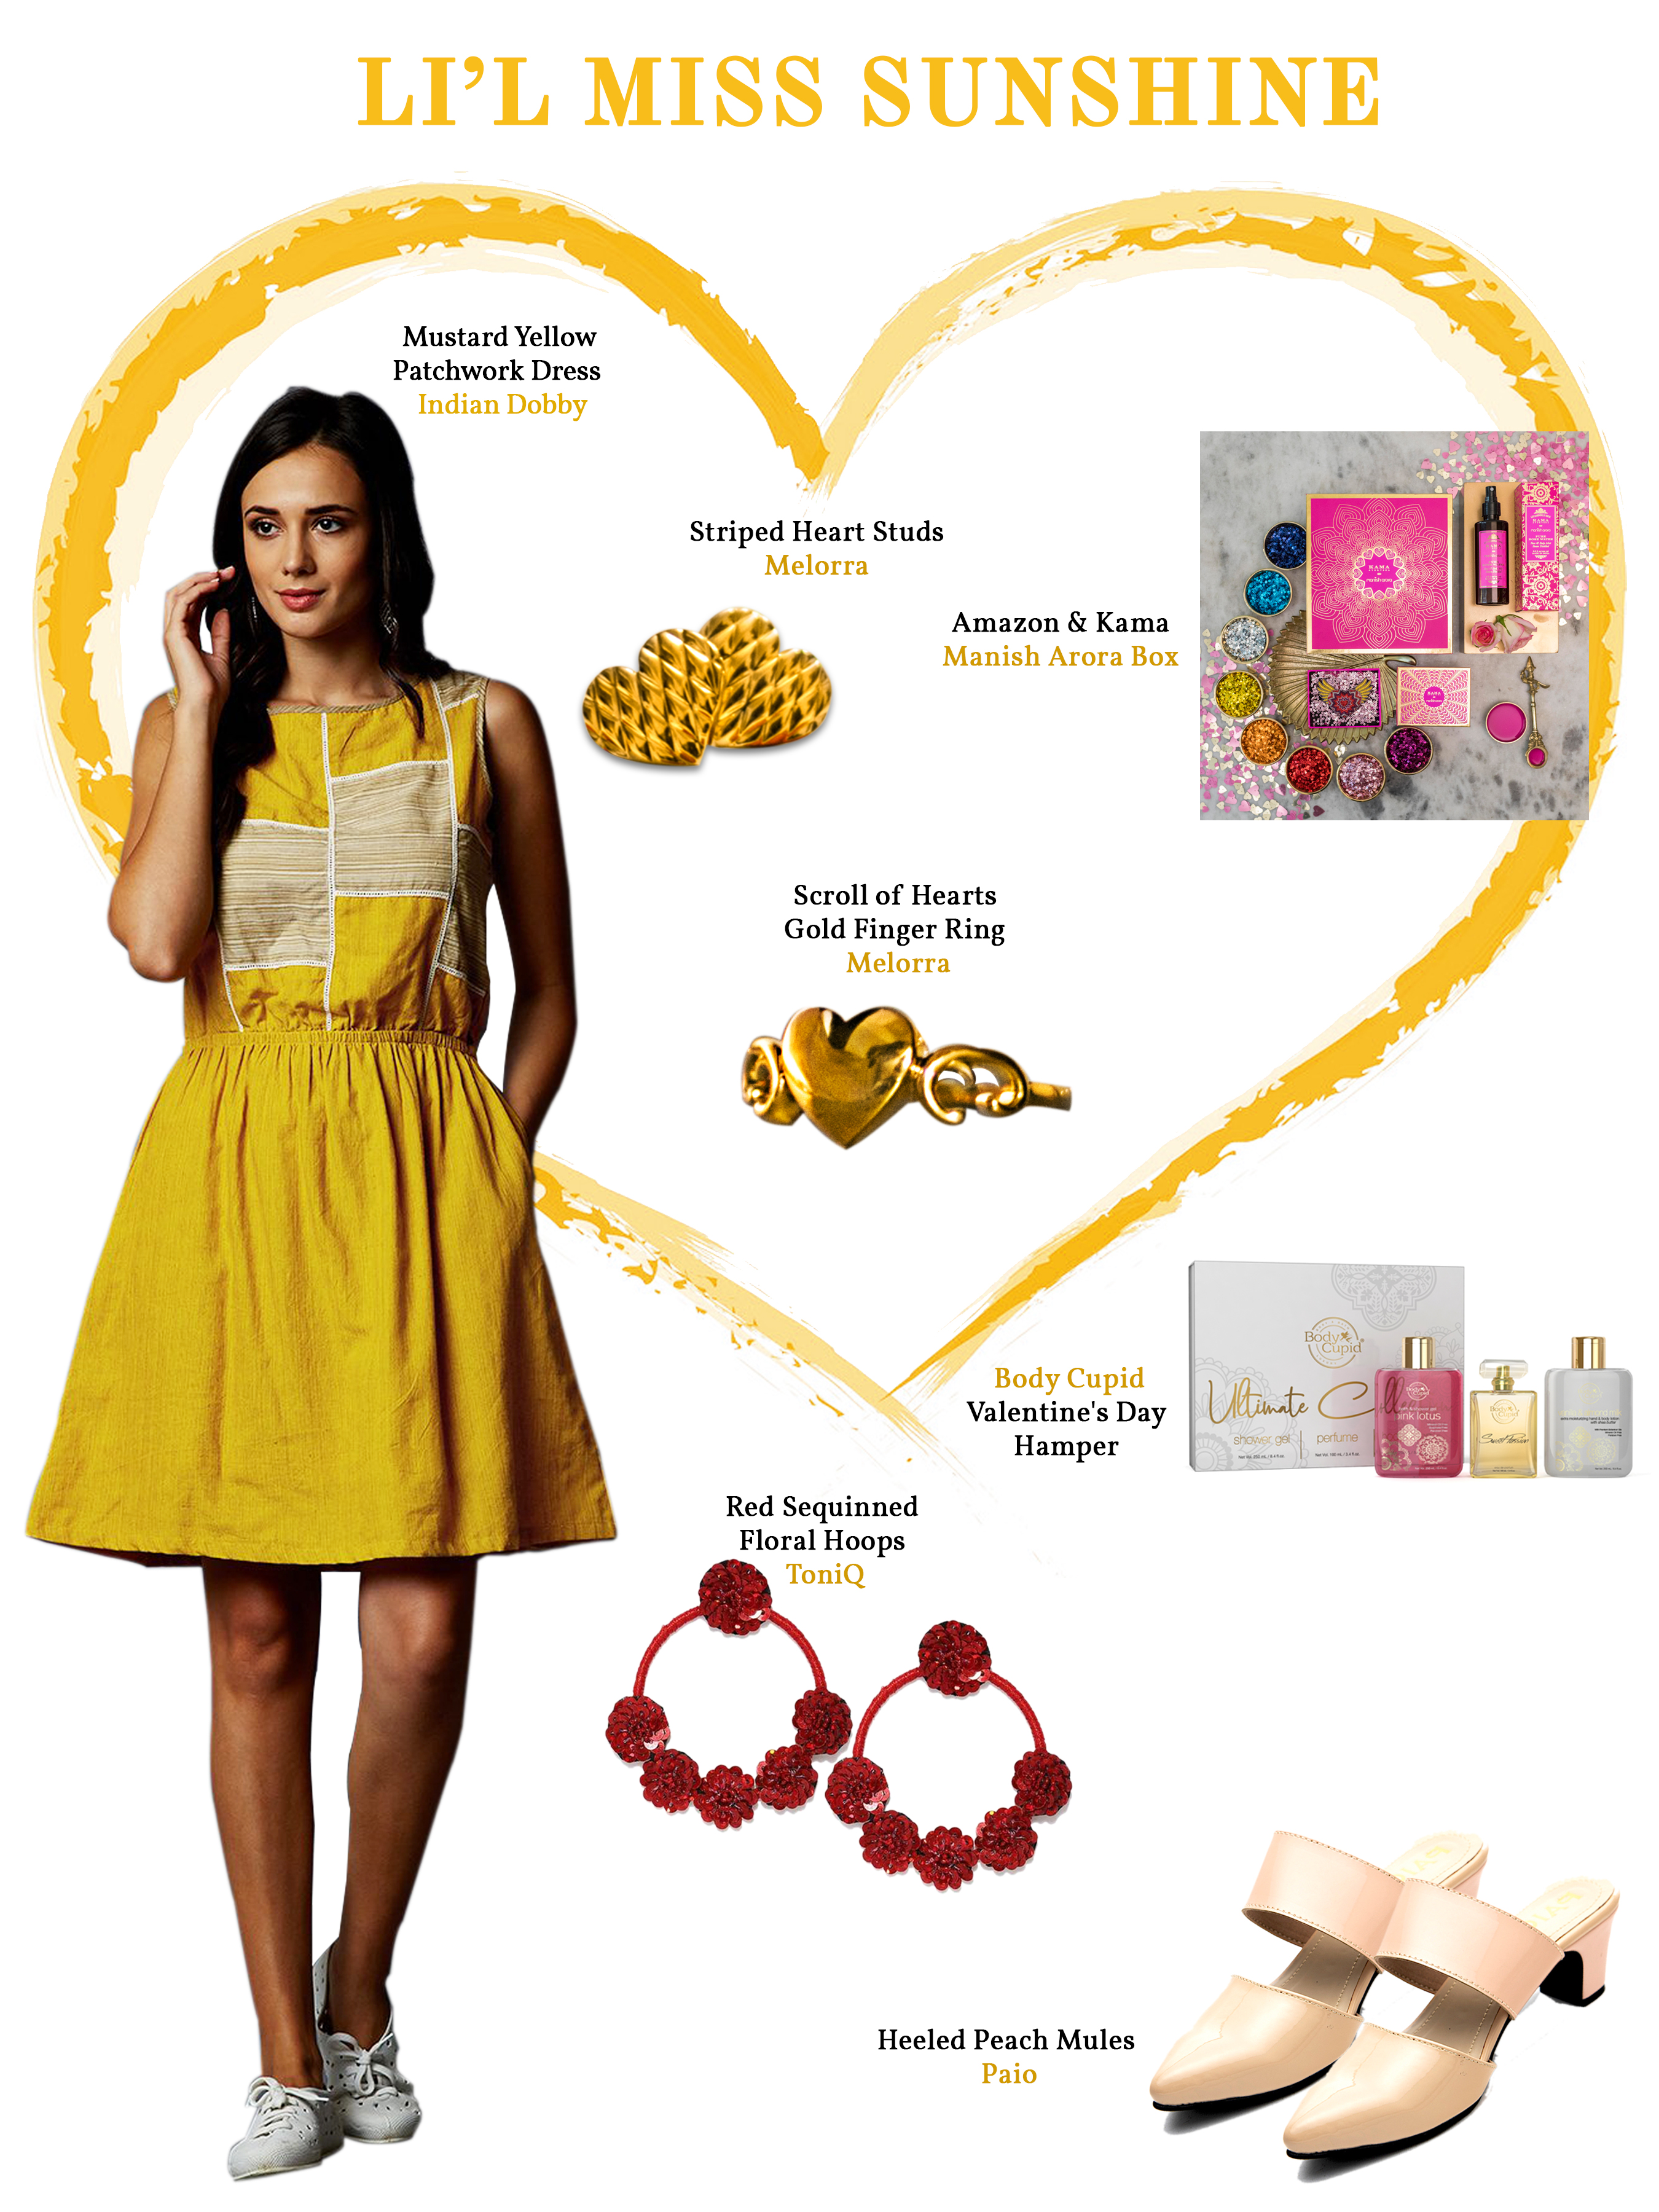 Ciceroni- Pick of the month – Valentine 's Day – Ahmedabad – shopping guide – gifting options – fashion and lifestyle – shopping for valentine's day – jewellery – Paio – Minawala – Titan – Body Cupid – Indian Dobby – Melorra – ToniQ – RK Jewellers - Twee in One - Studio Casa 9- Givenchy - Narayan Jewellers – Julia Roberts – Audrey Hepburn – Emma Stone – Breakfast at Tiffany's – Pretty Woman – La La Land